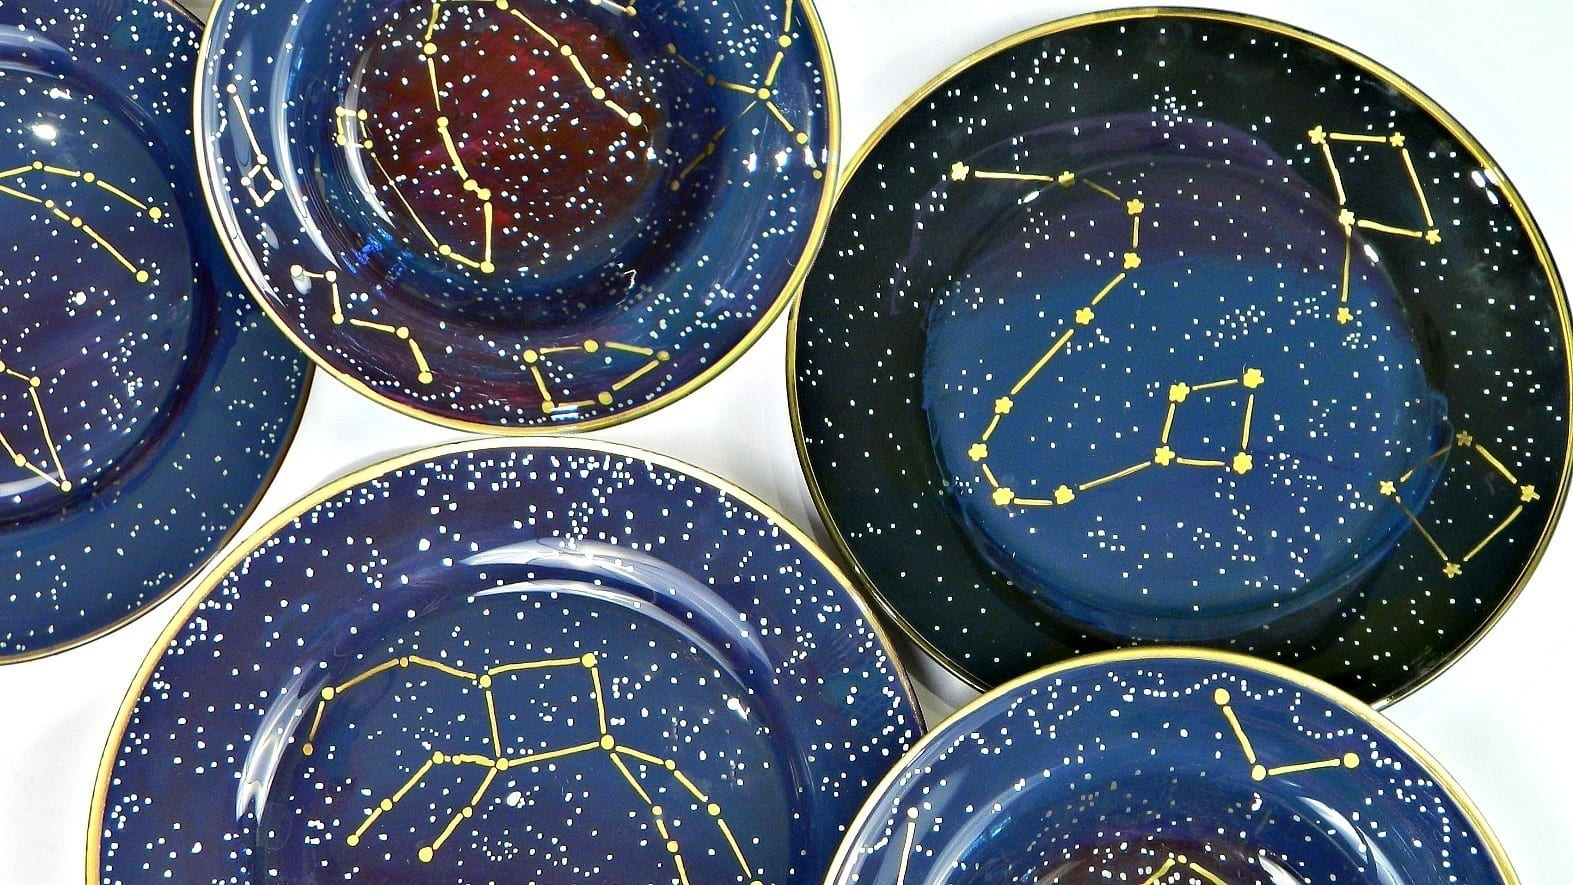 Tinker Zone: Constellation Plates